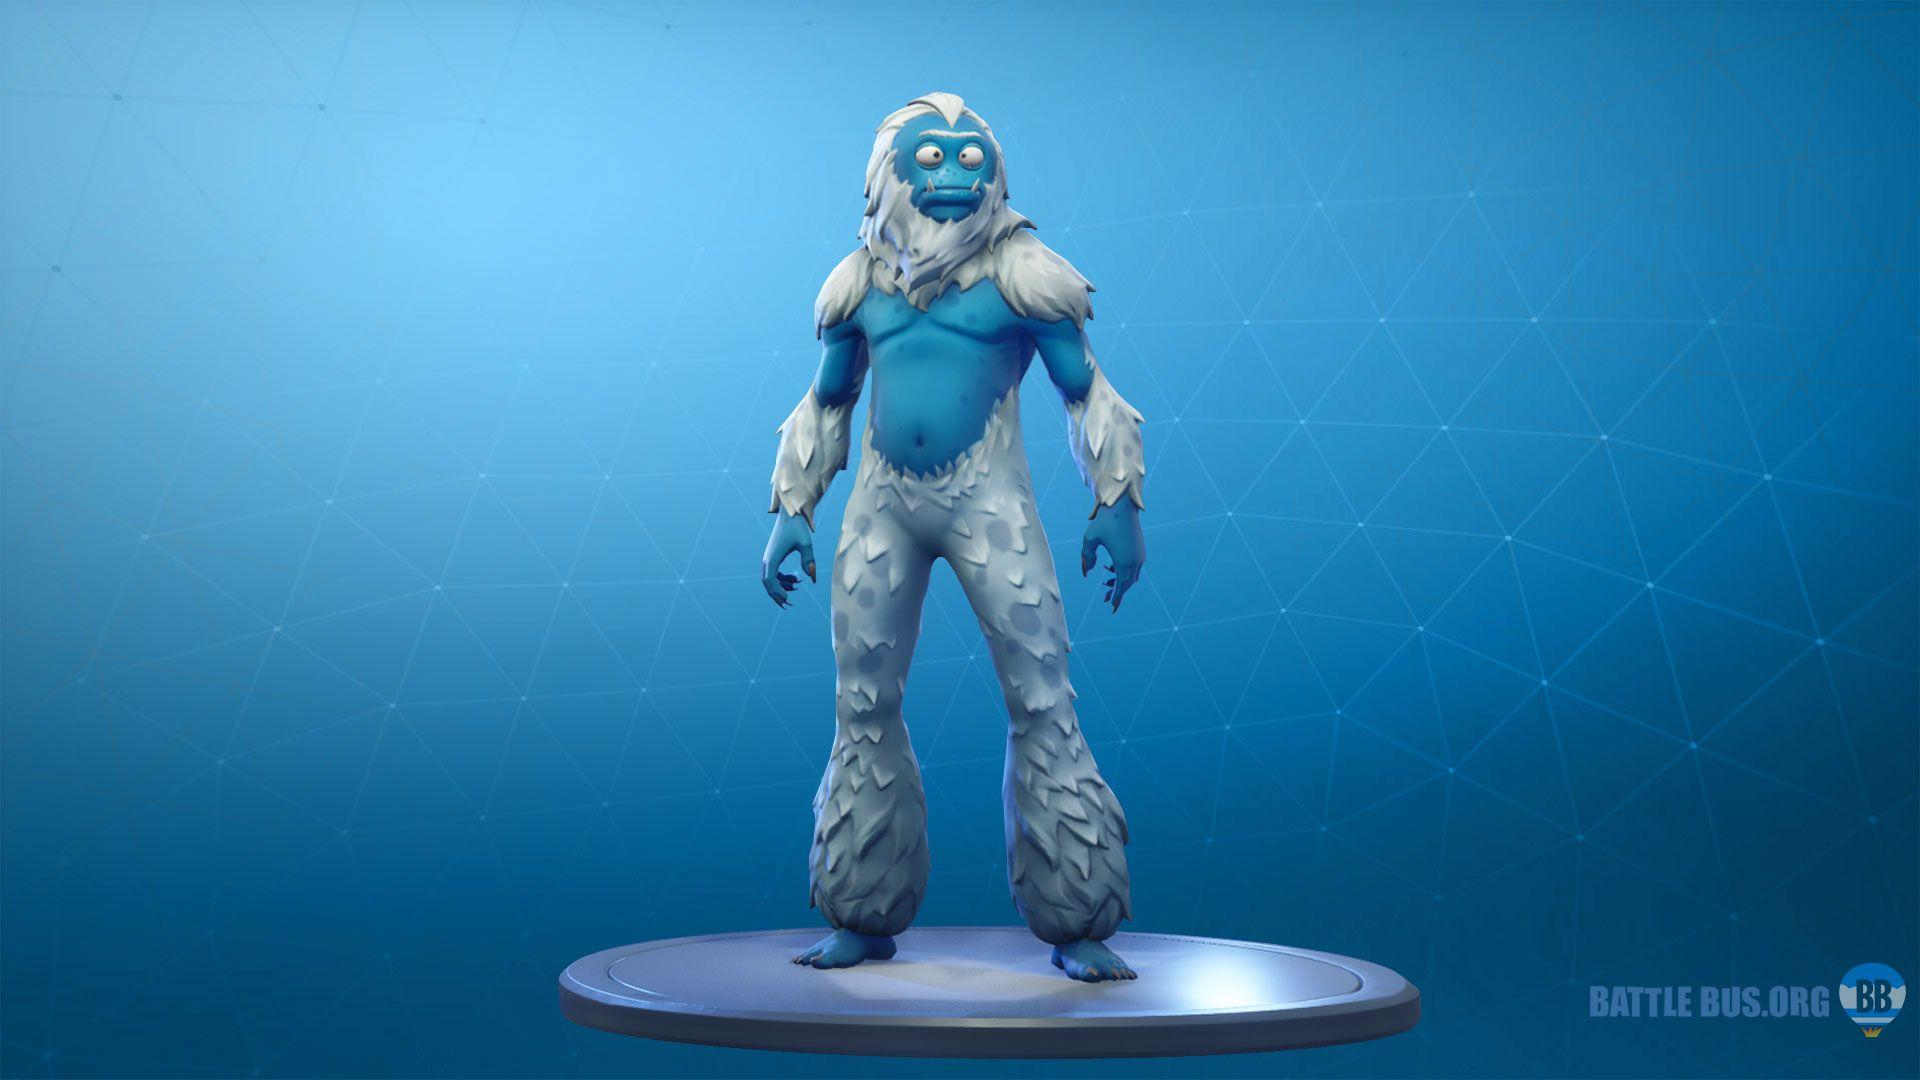 Trog Fortnite Skin